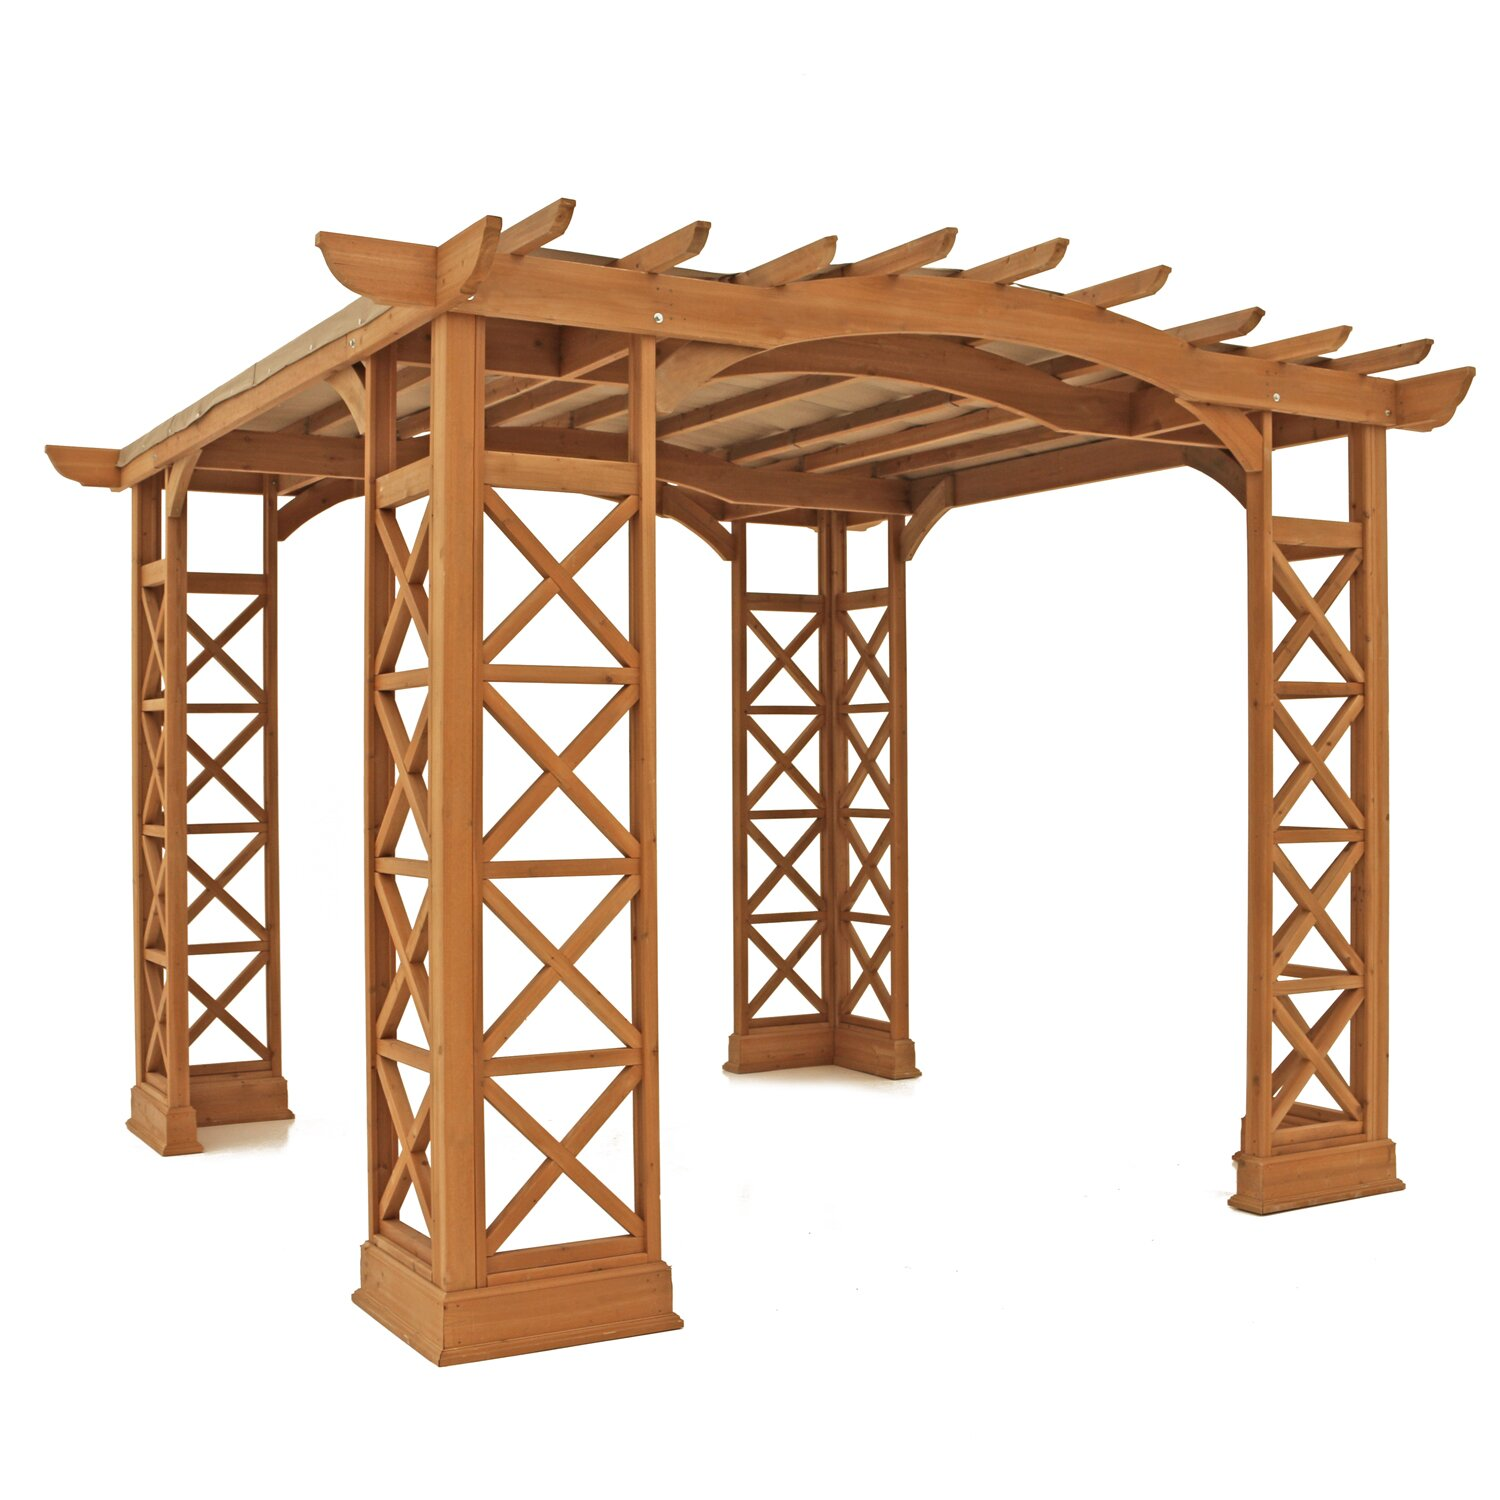 yardistry arched roof 8 2 ft h x 12 ft w x 12 ft d pergola reviews. Black Bedroom Furniture Sets. Home Design Ideas